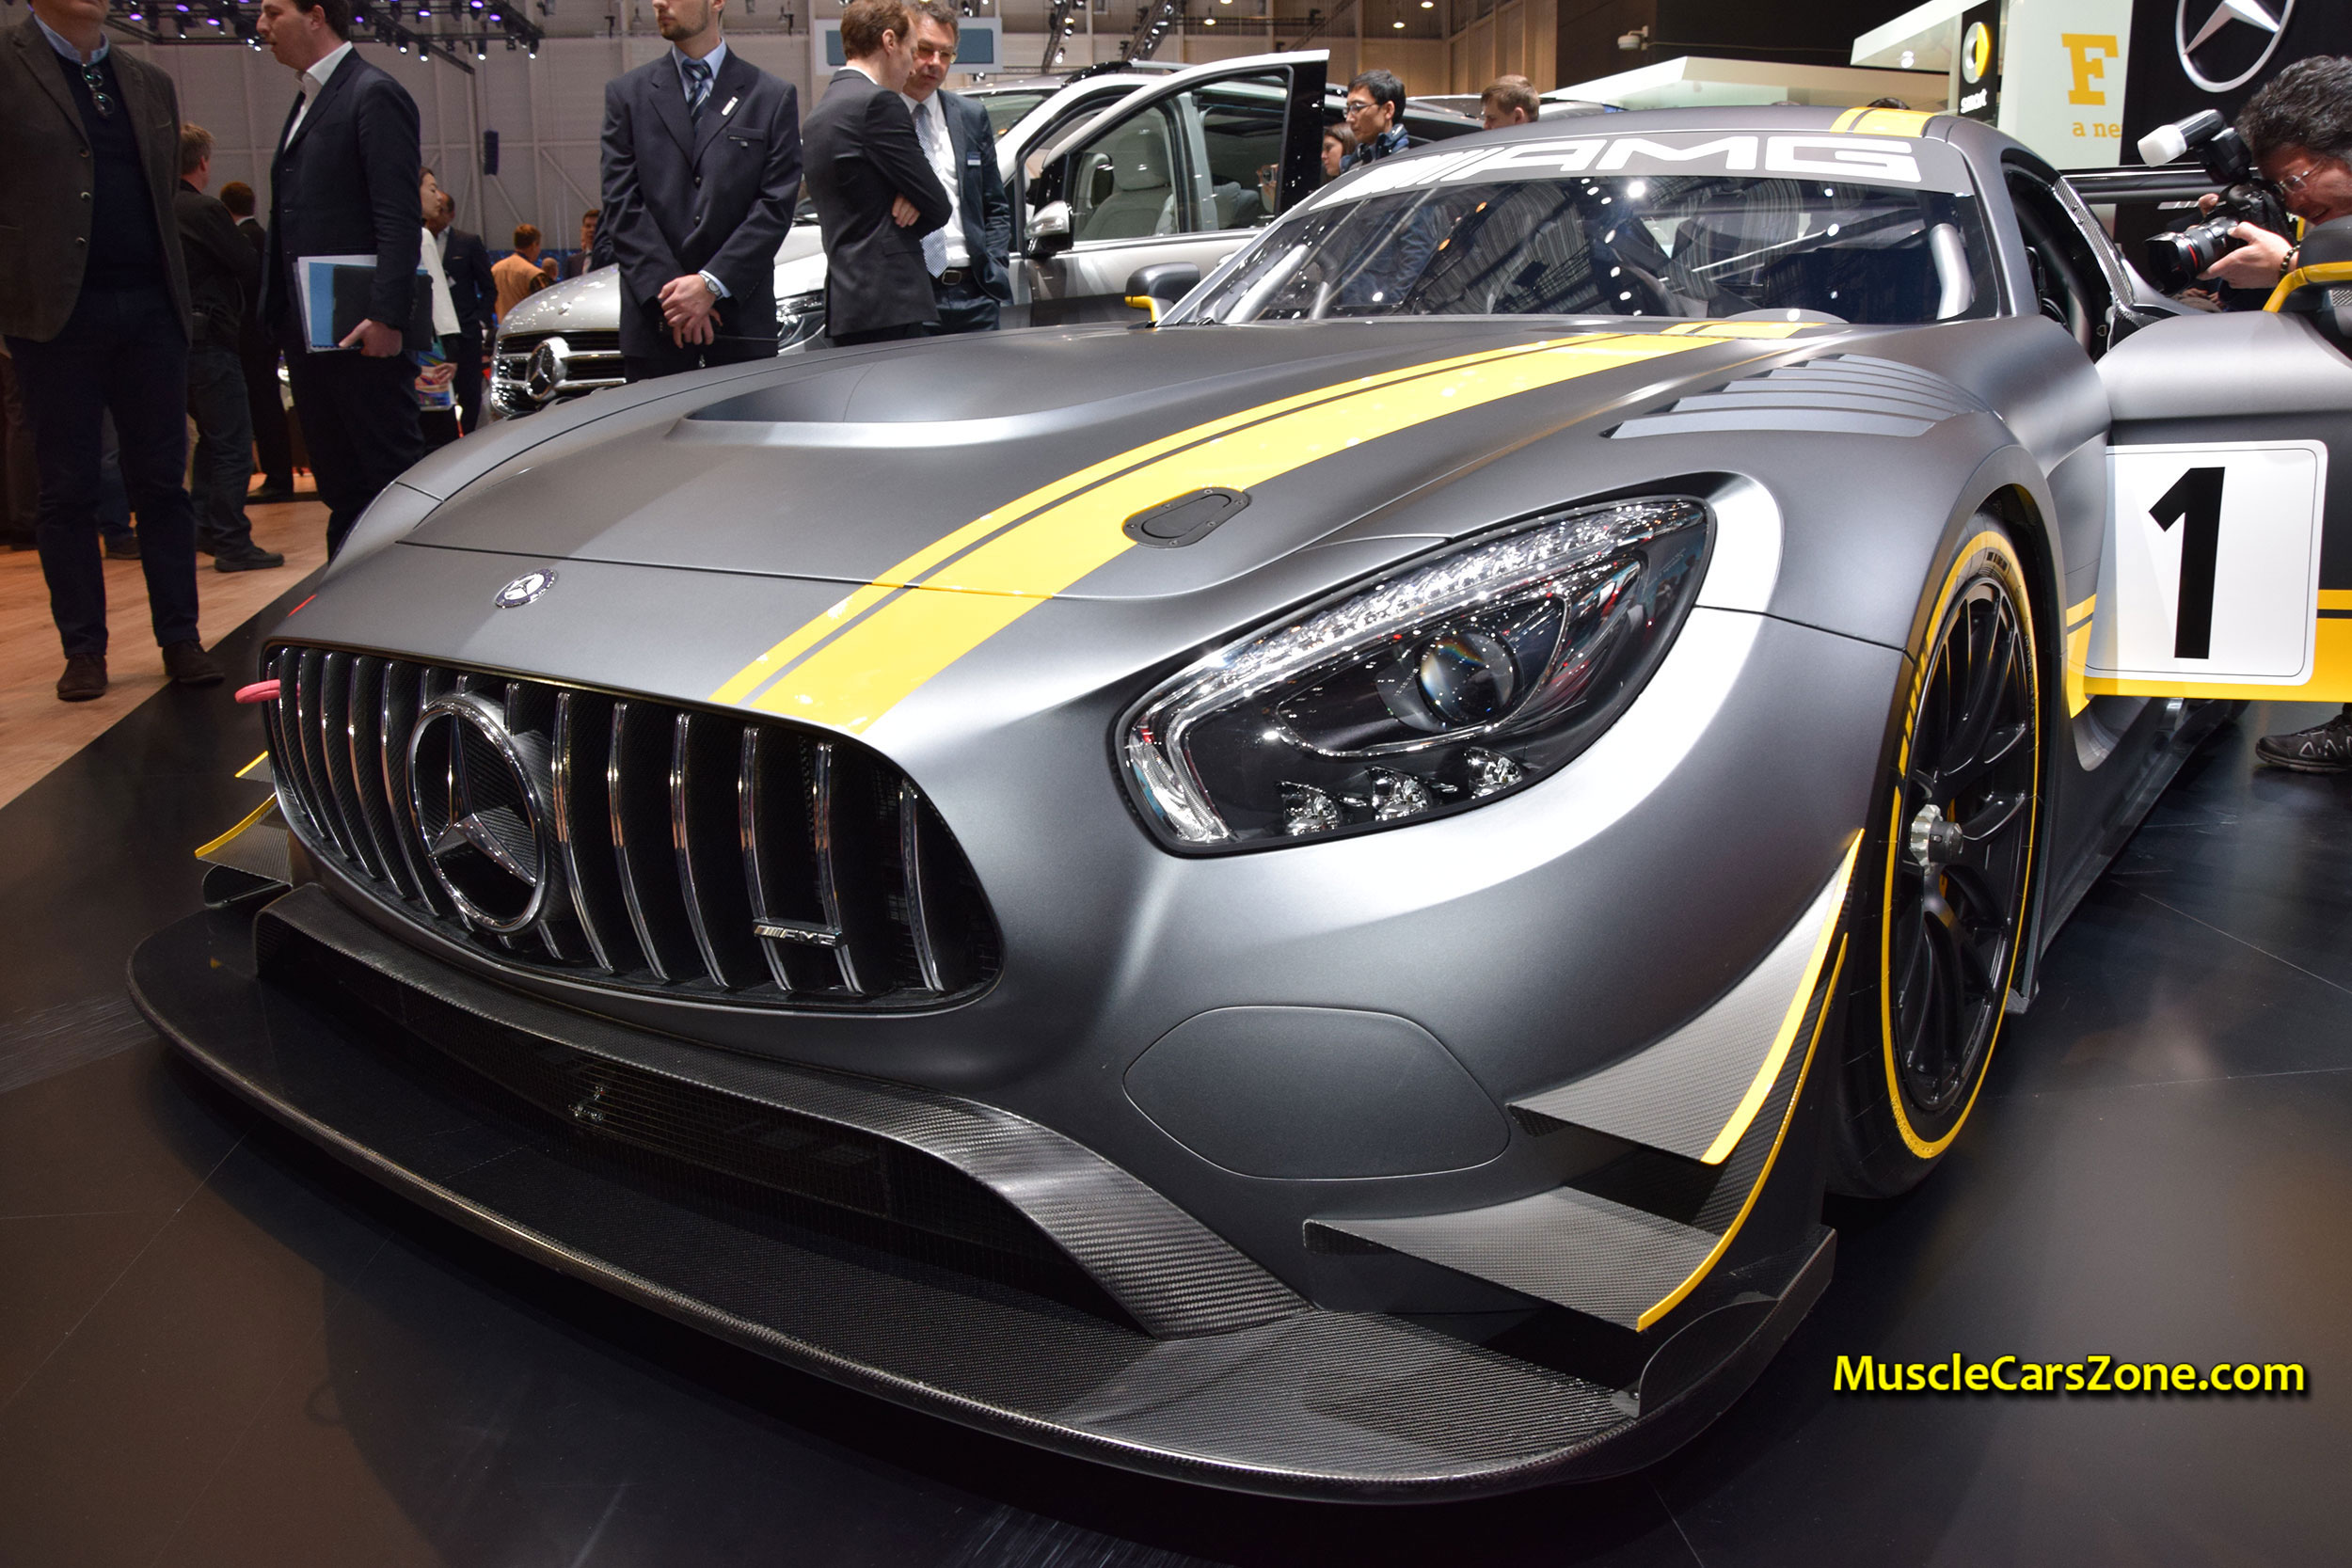 Mercedes Amg Race Car Geneva Motor Show Muscle